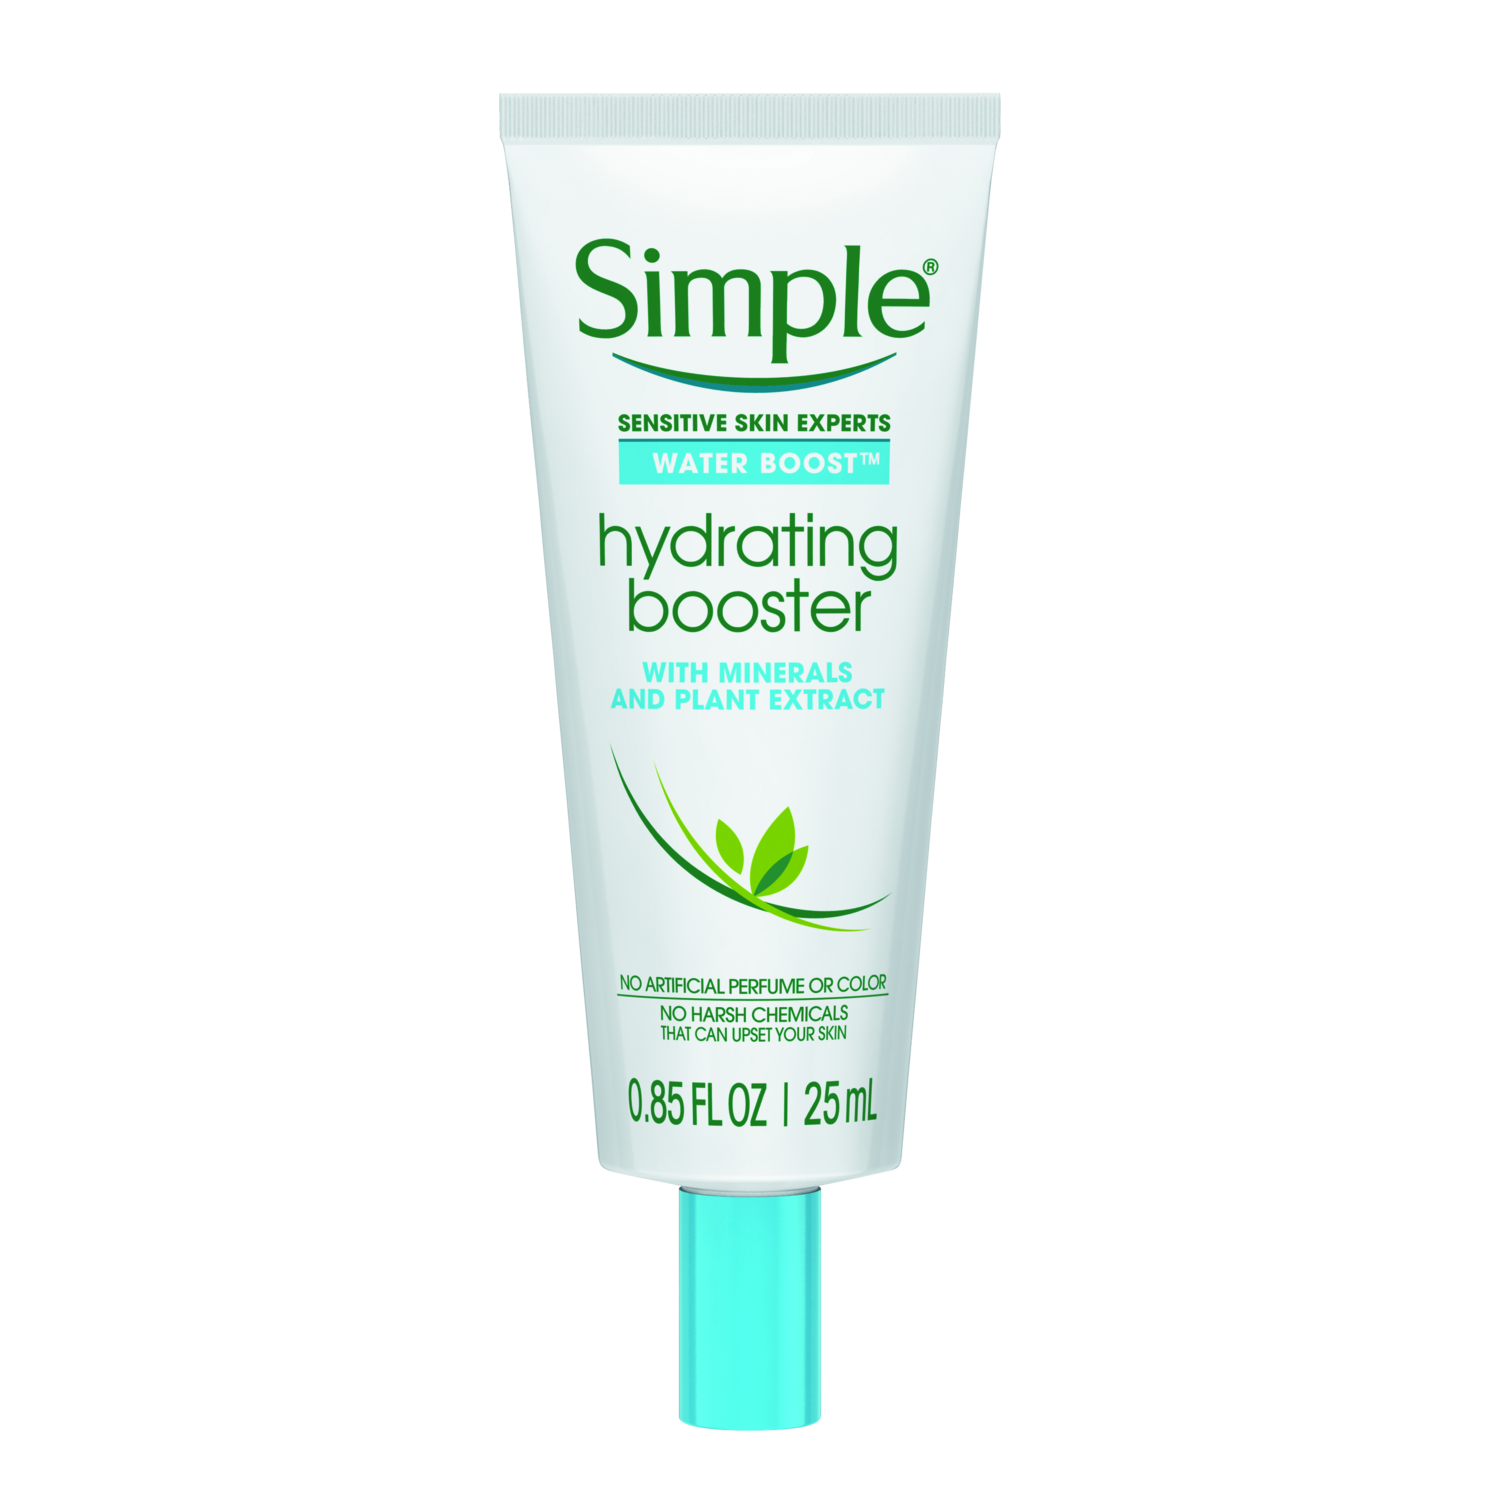 Hydration Skin Care: Water Boost Hydrating Booster